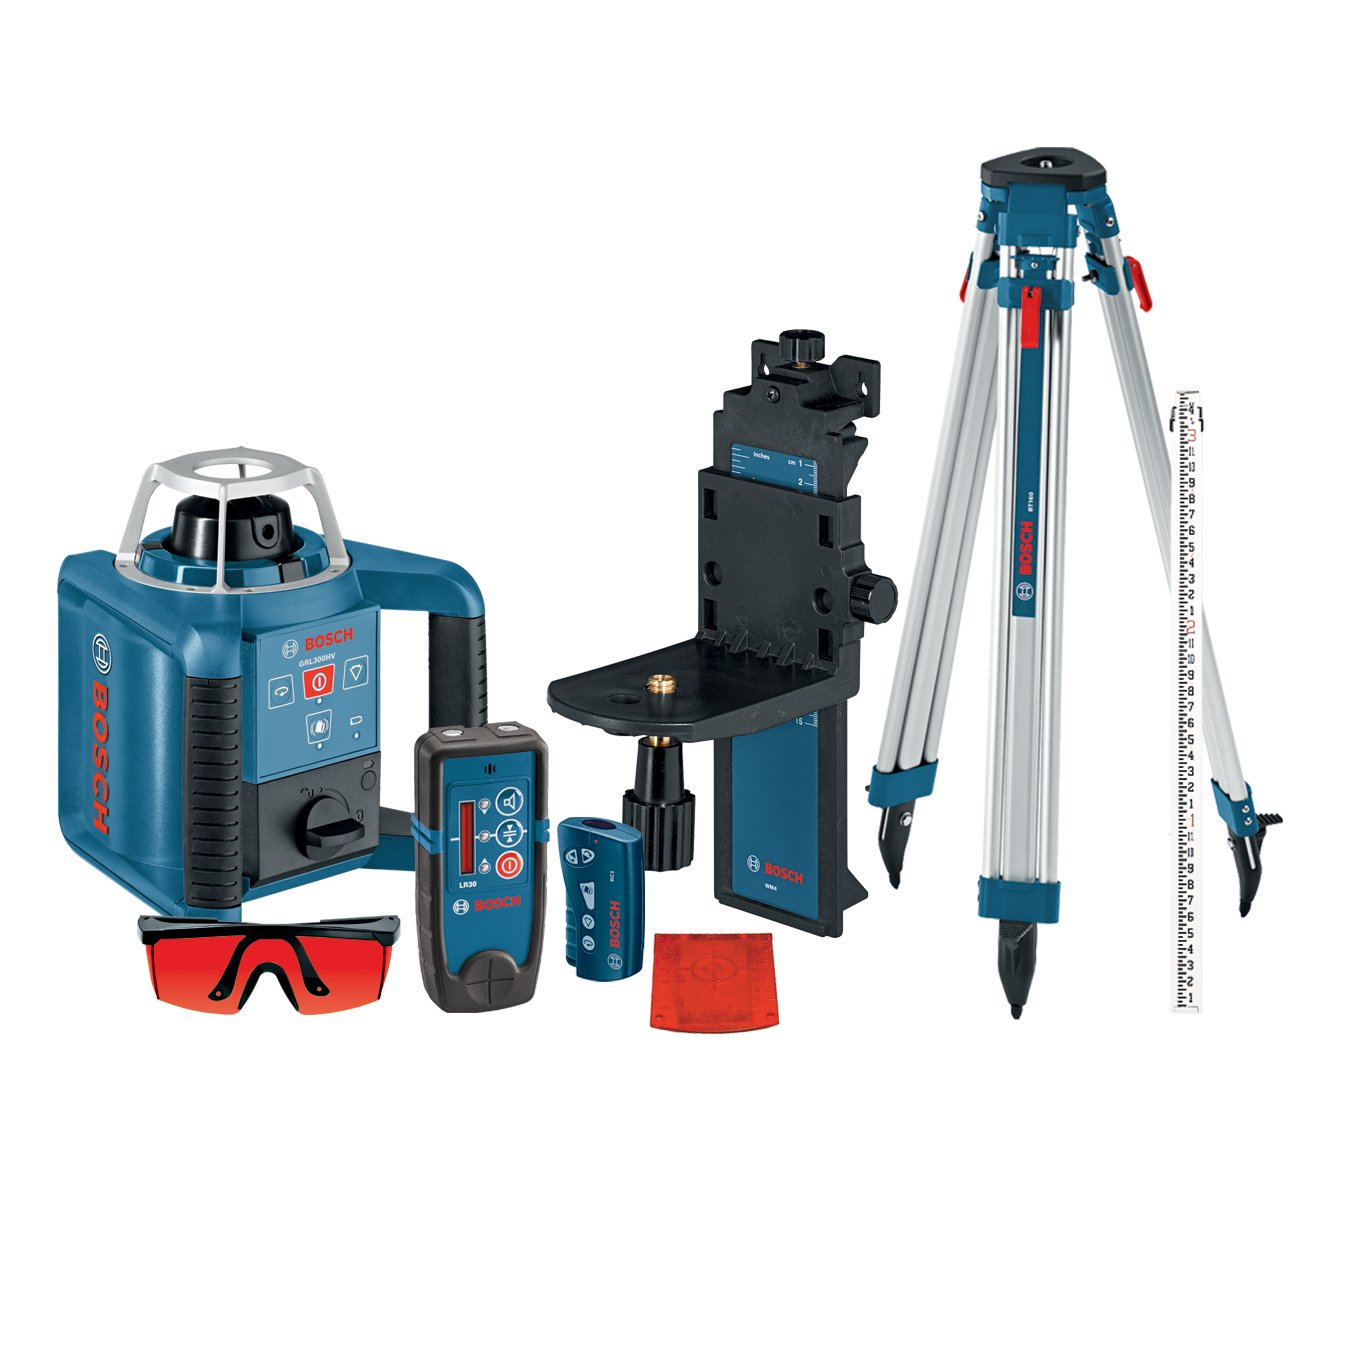 Bosch Power Tools - GTL3 Tile Layout Laser Video - YouTube